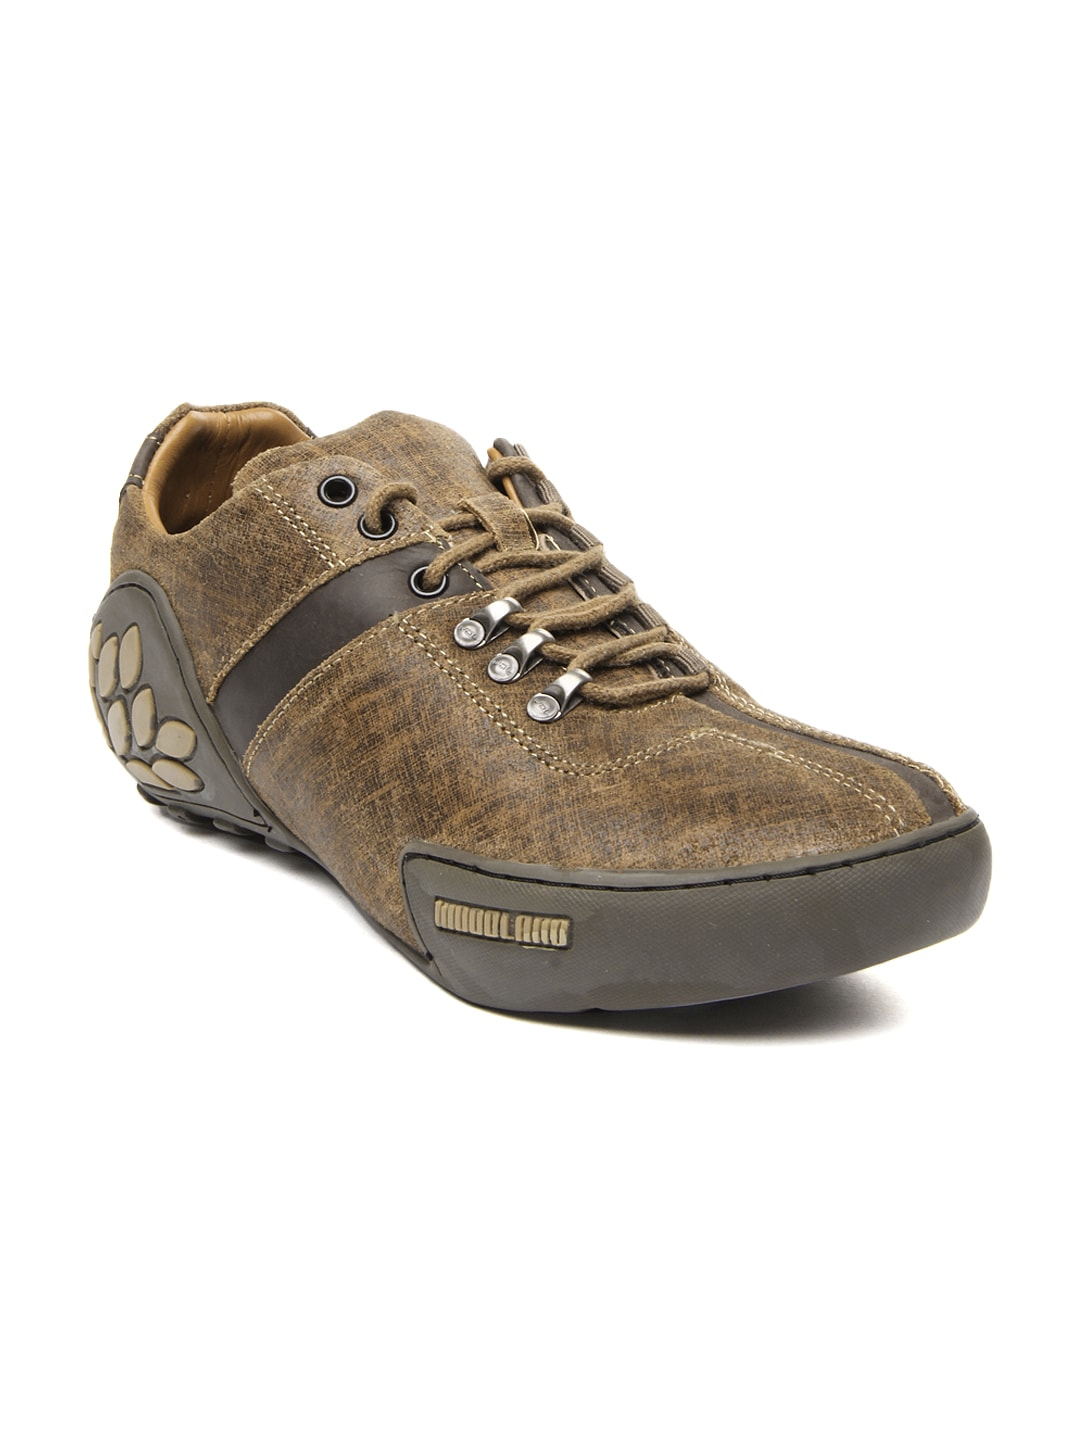 Woodland Formal Leather Shoes